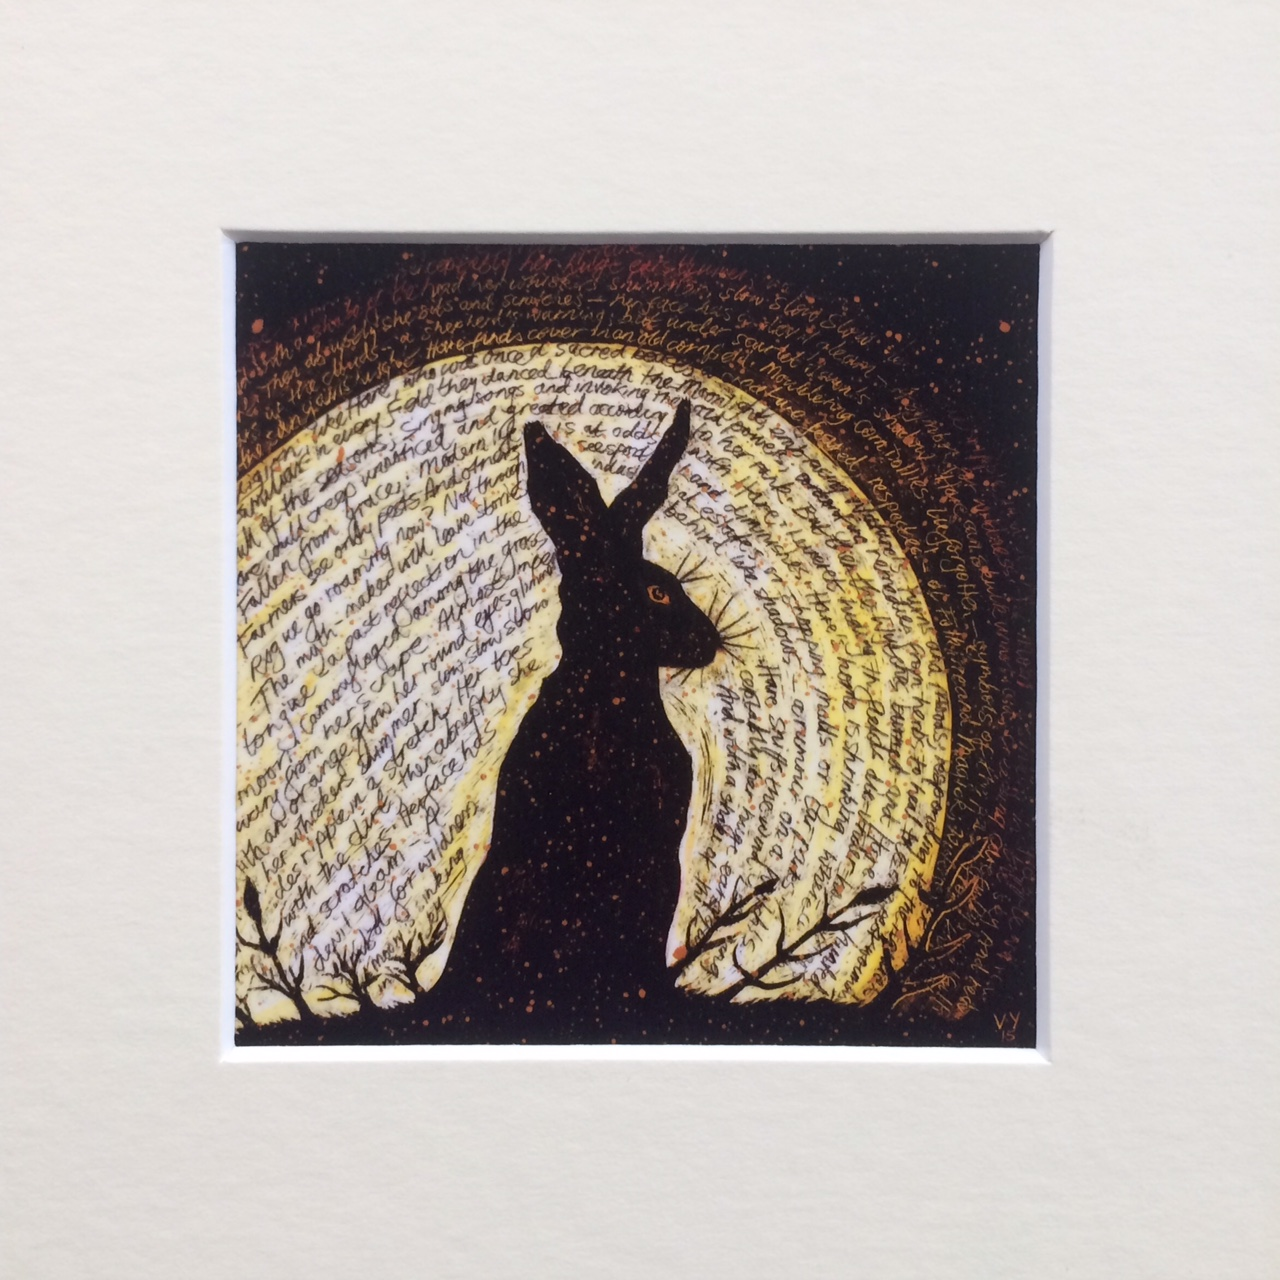 'Invocation' small mounted print